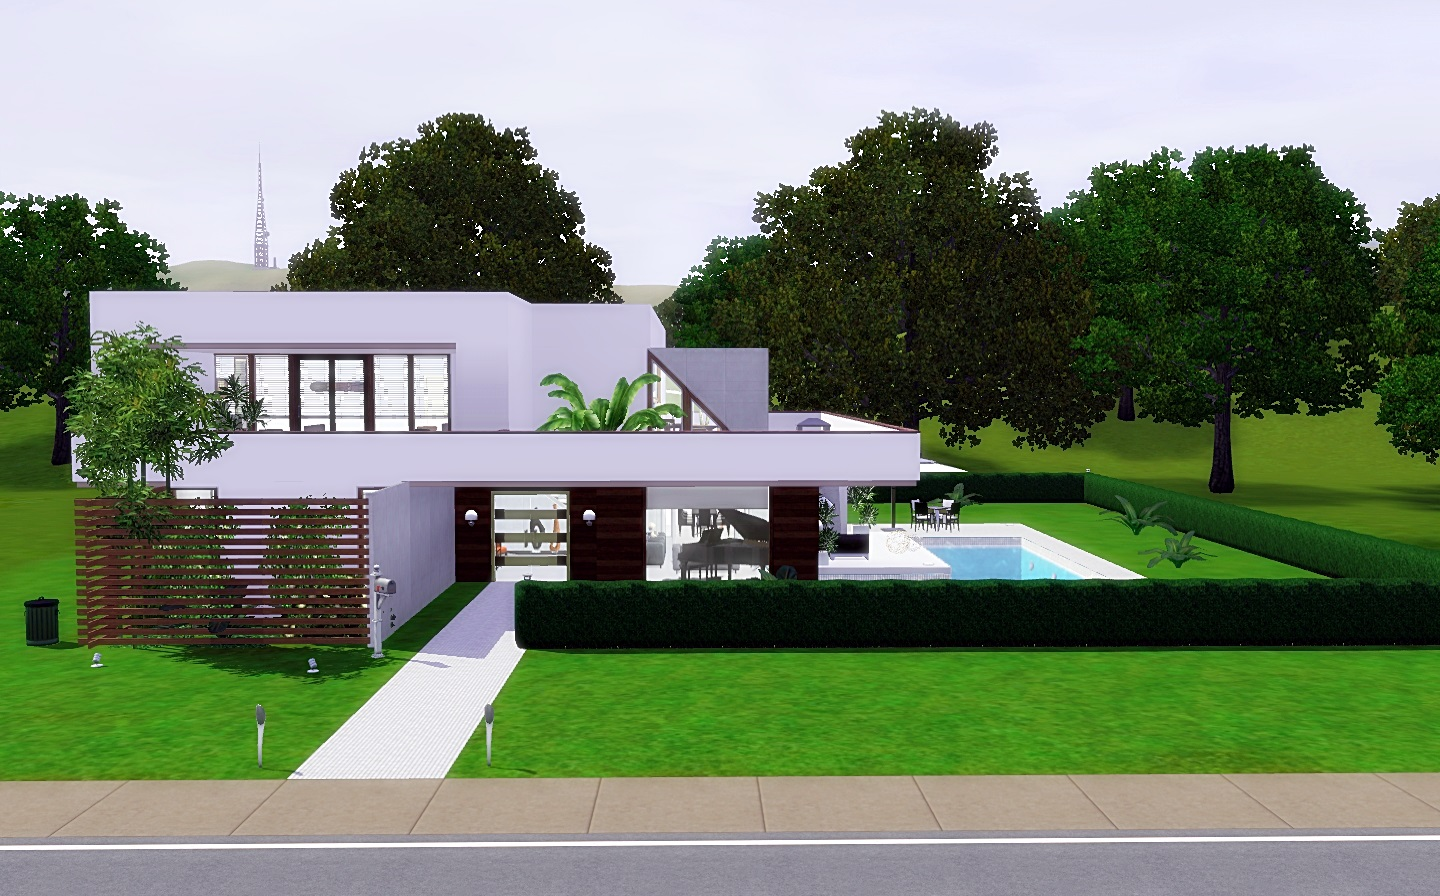 Sims 3 Updates - Downloads / Objects / Buildings / esidential ... - ^